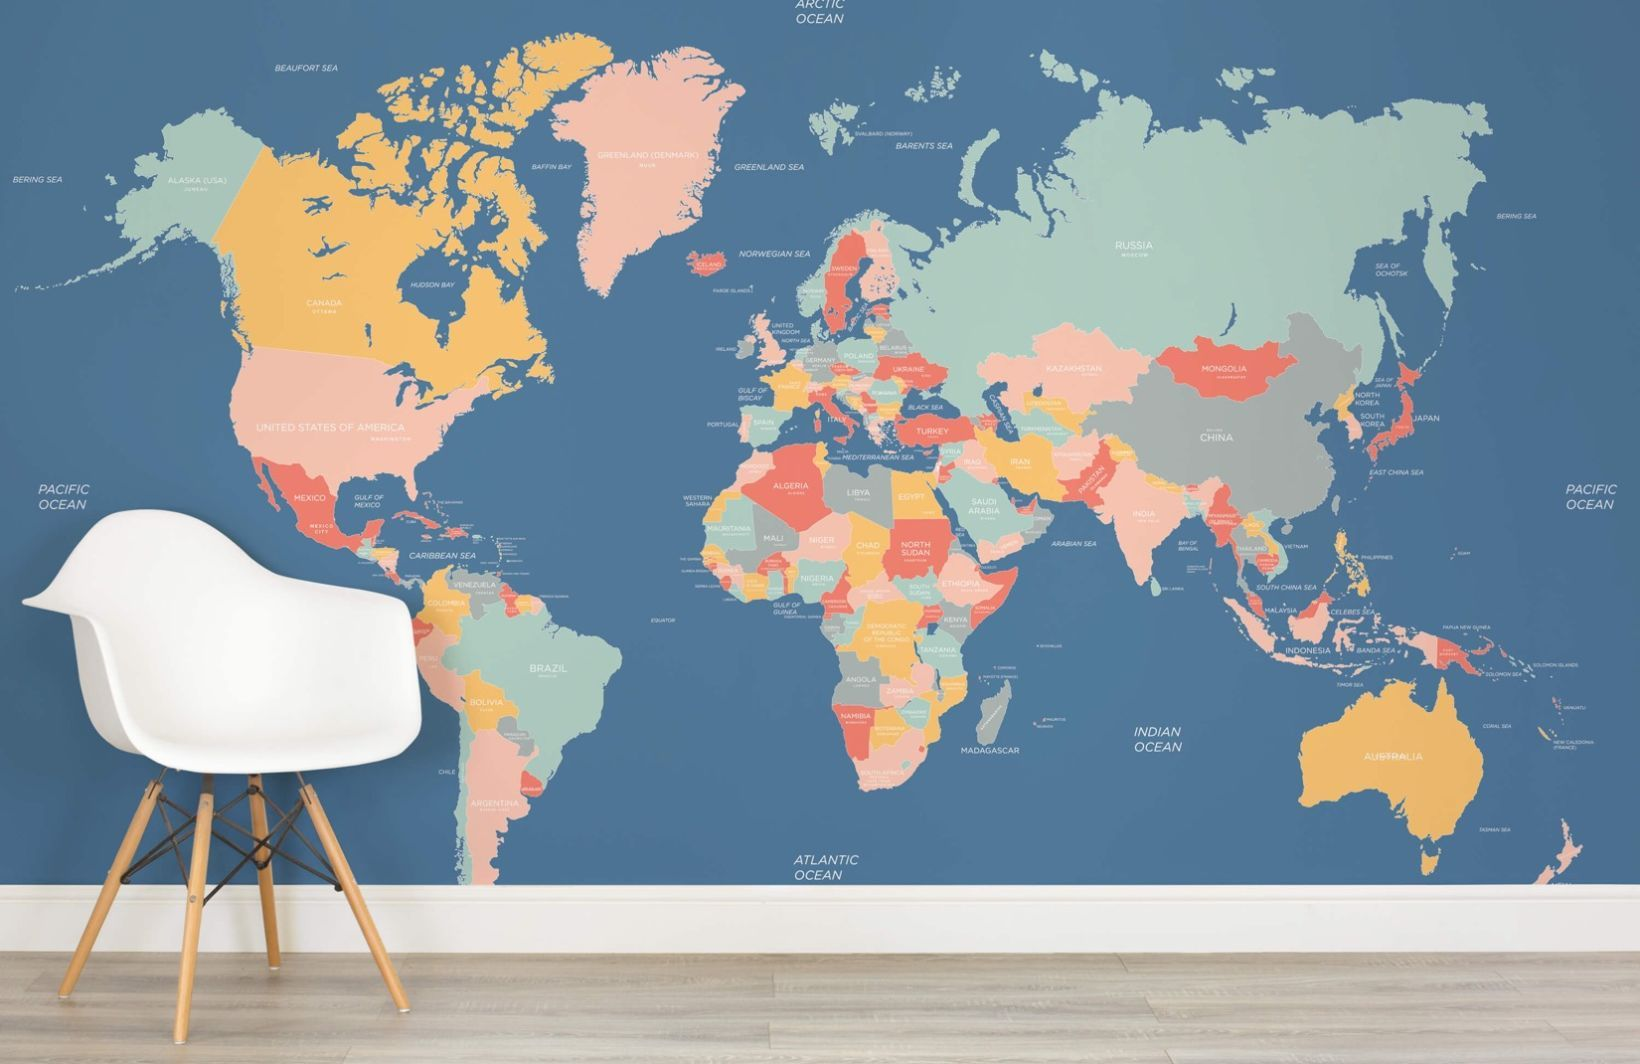 Navigator world map mural muralswallpaper room design navigator world map mural muralswallpaper wallpaper muralswall gumiabroncs Choice Image